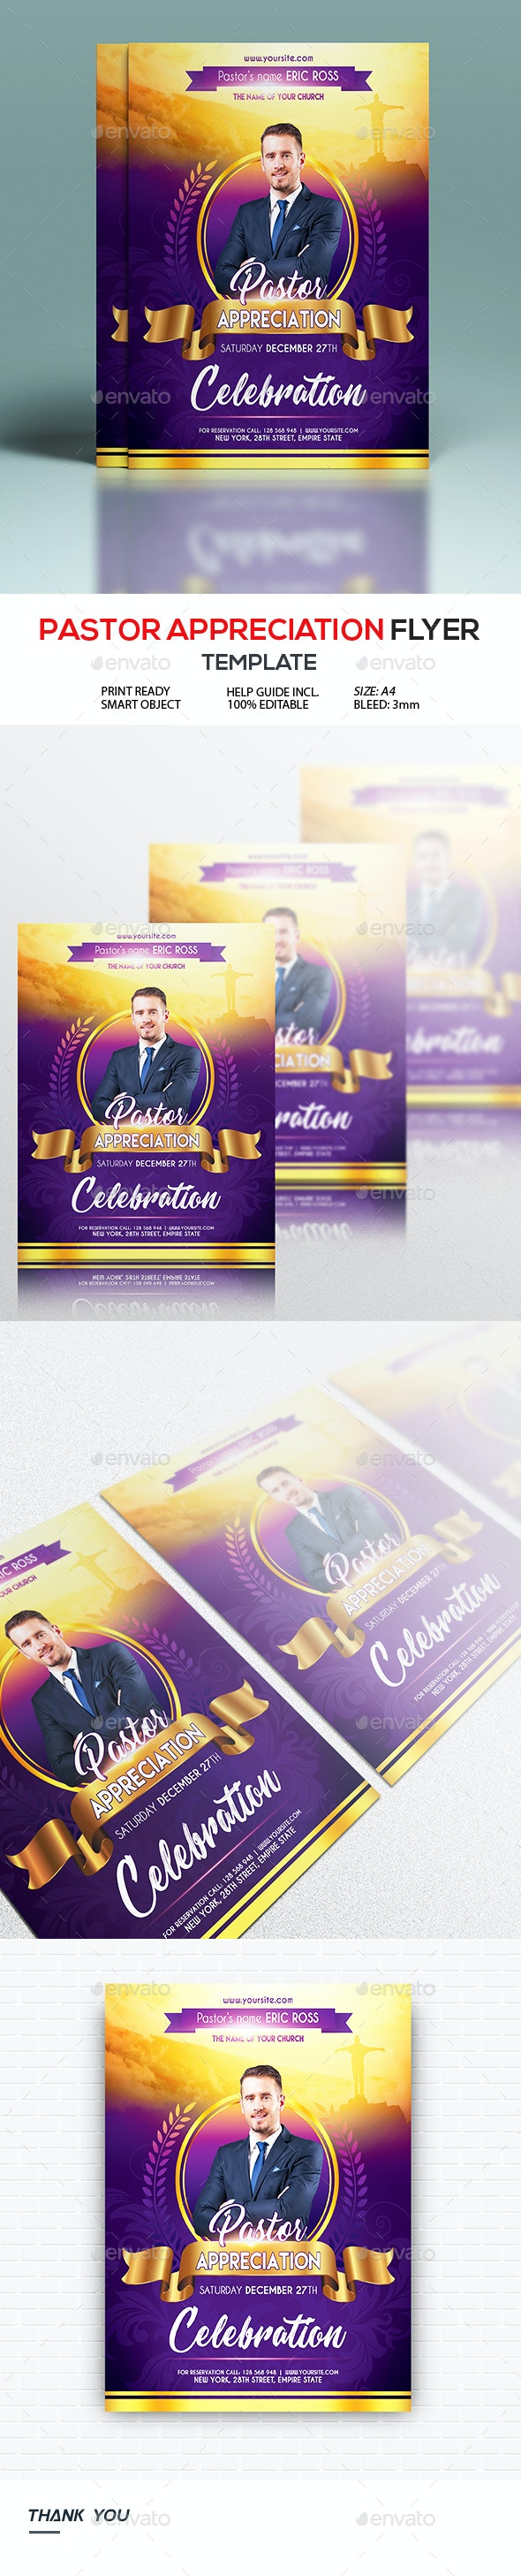 Pastors Appreciation Church Flyer Template - Church Flyers